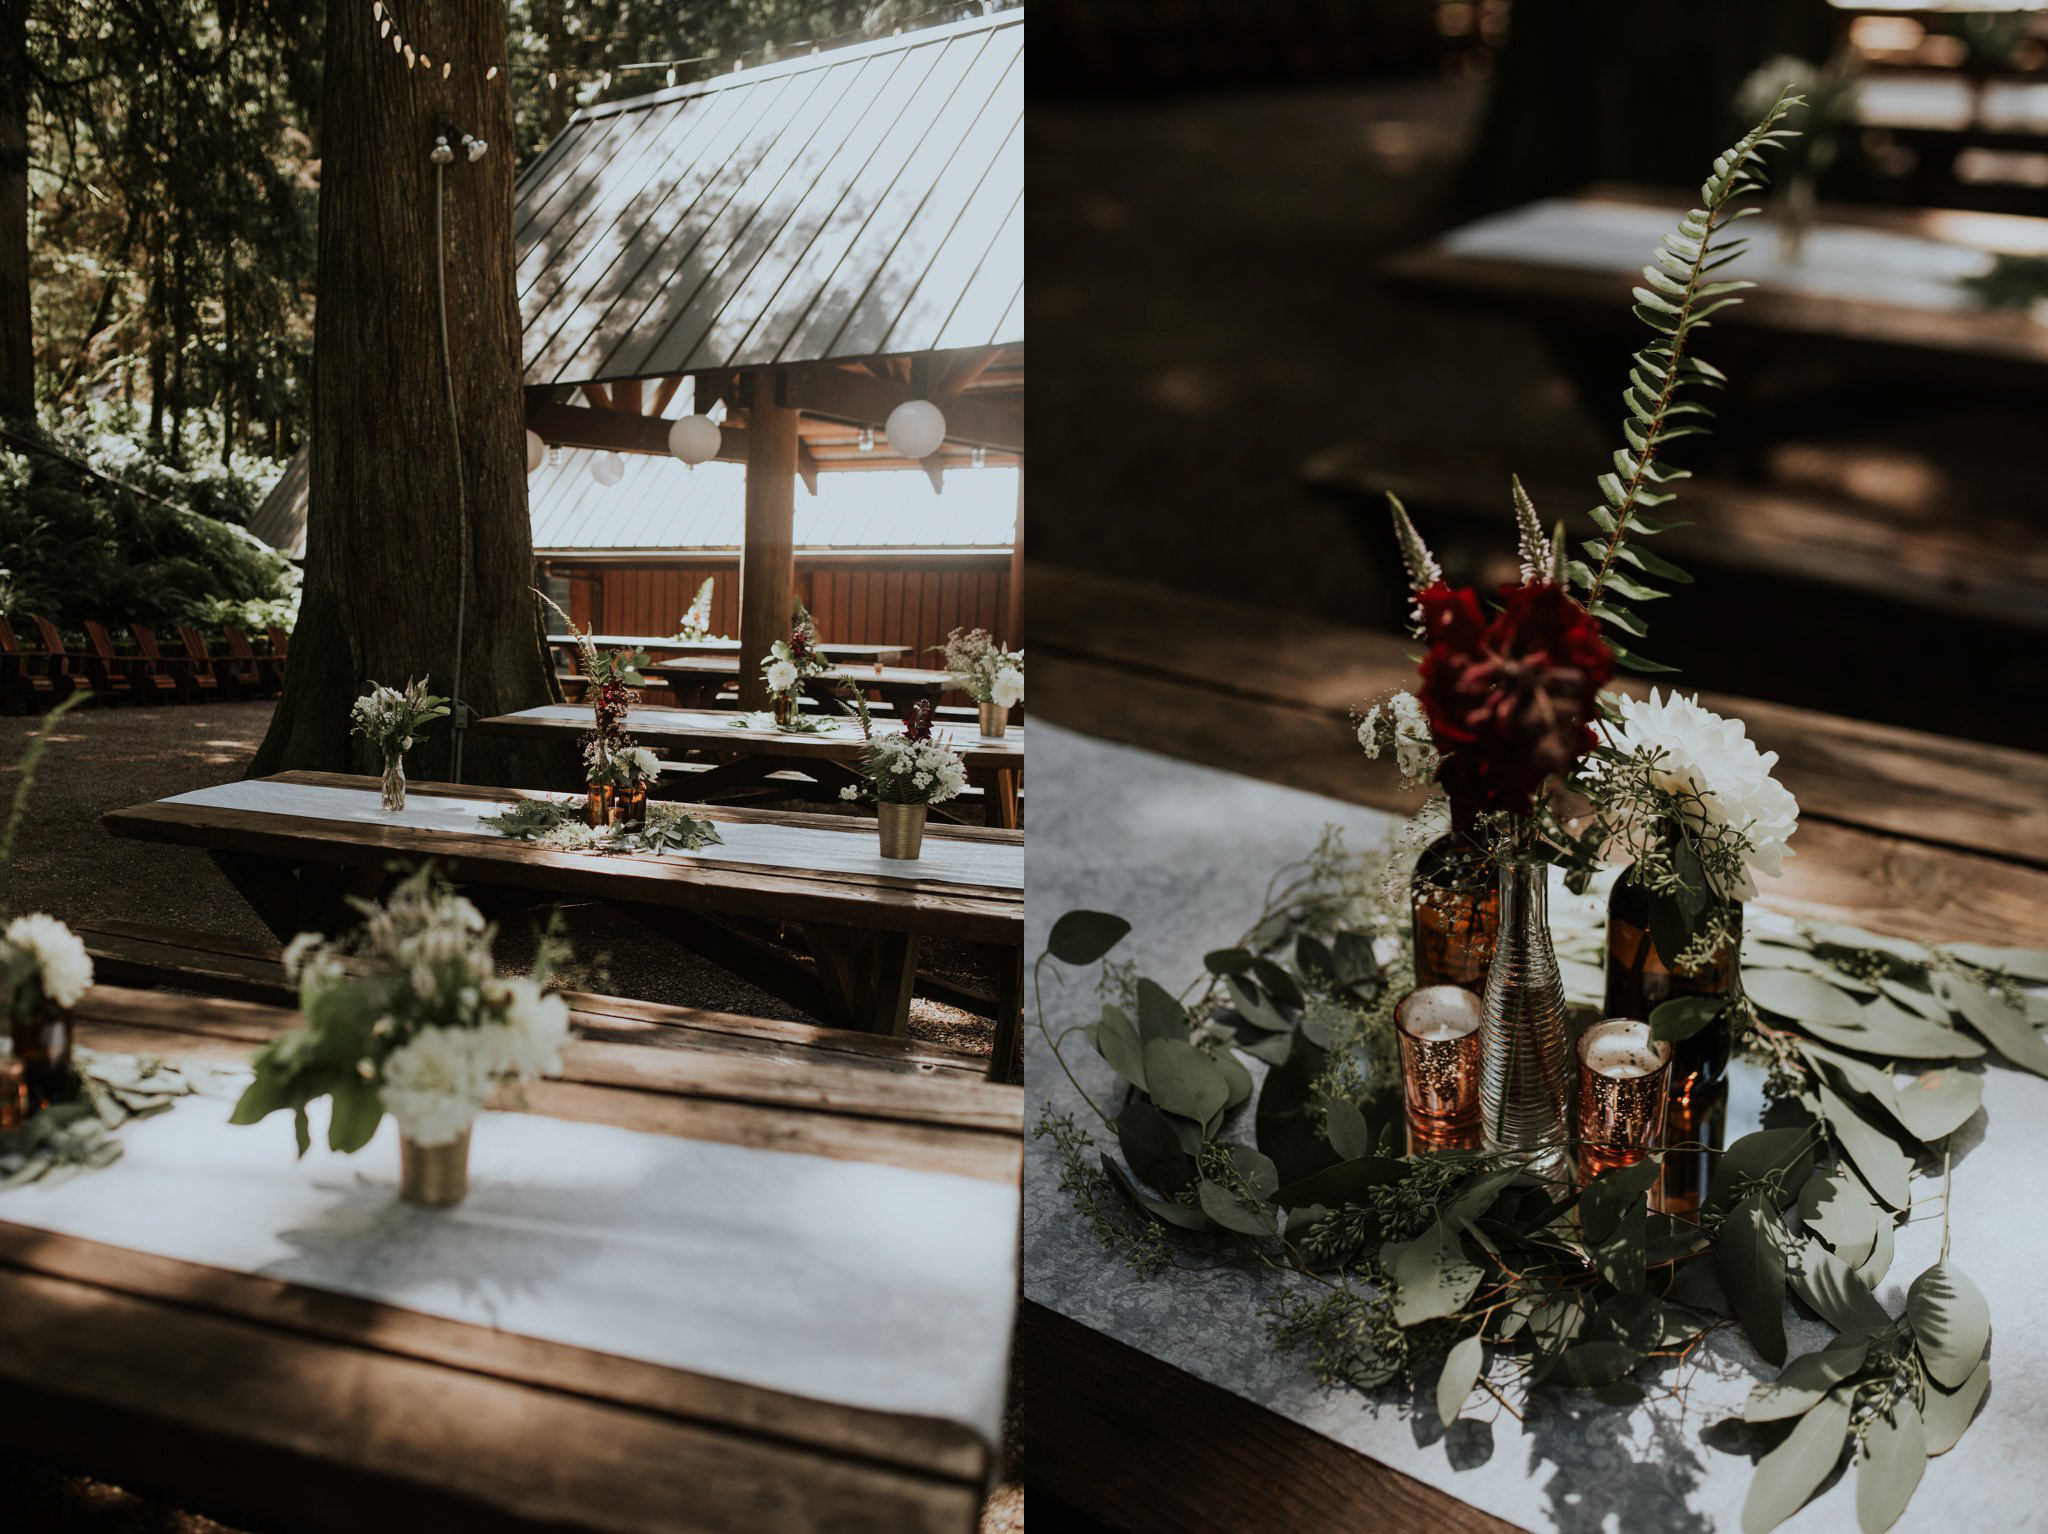 intimate-boho-campfire-wedding-shangri-la-on-the-green-seattle-wedding-photographer-caitlyn-nikula-photography-16.jpg